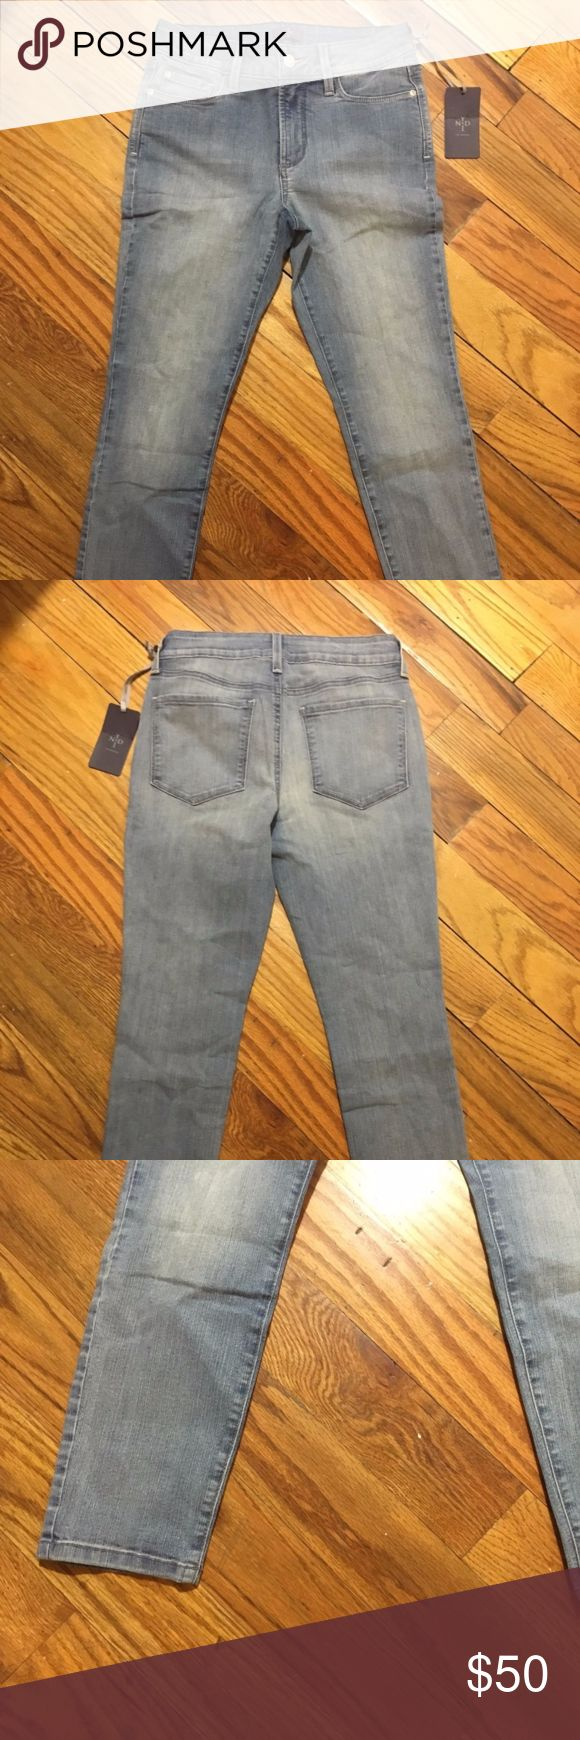 New! NYDJ Skinny Faded Jeans Petite 0P / XS New with tags! These were sample - sample markings on the interior (not visible on outside). Skinny jeans. Petite size 0.  Not Your Daughter's Jeans NYDJ Jeans Skinny